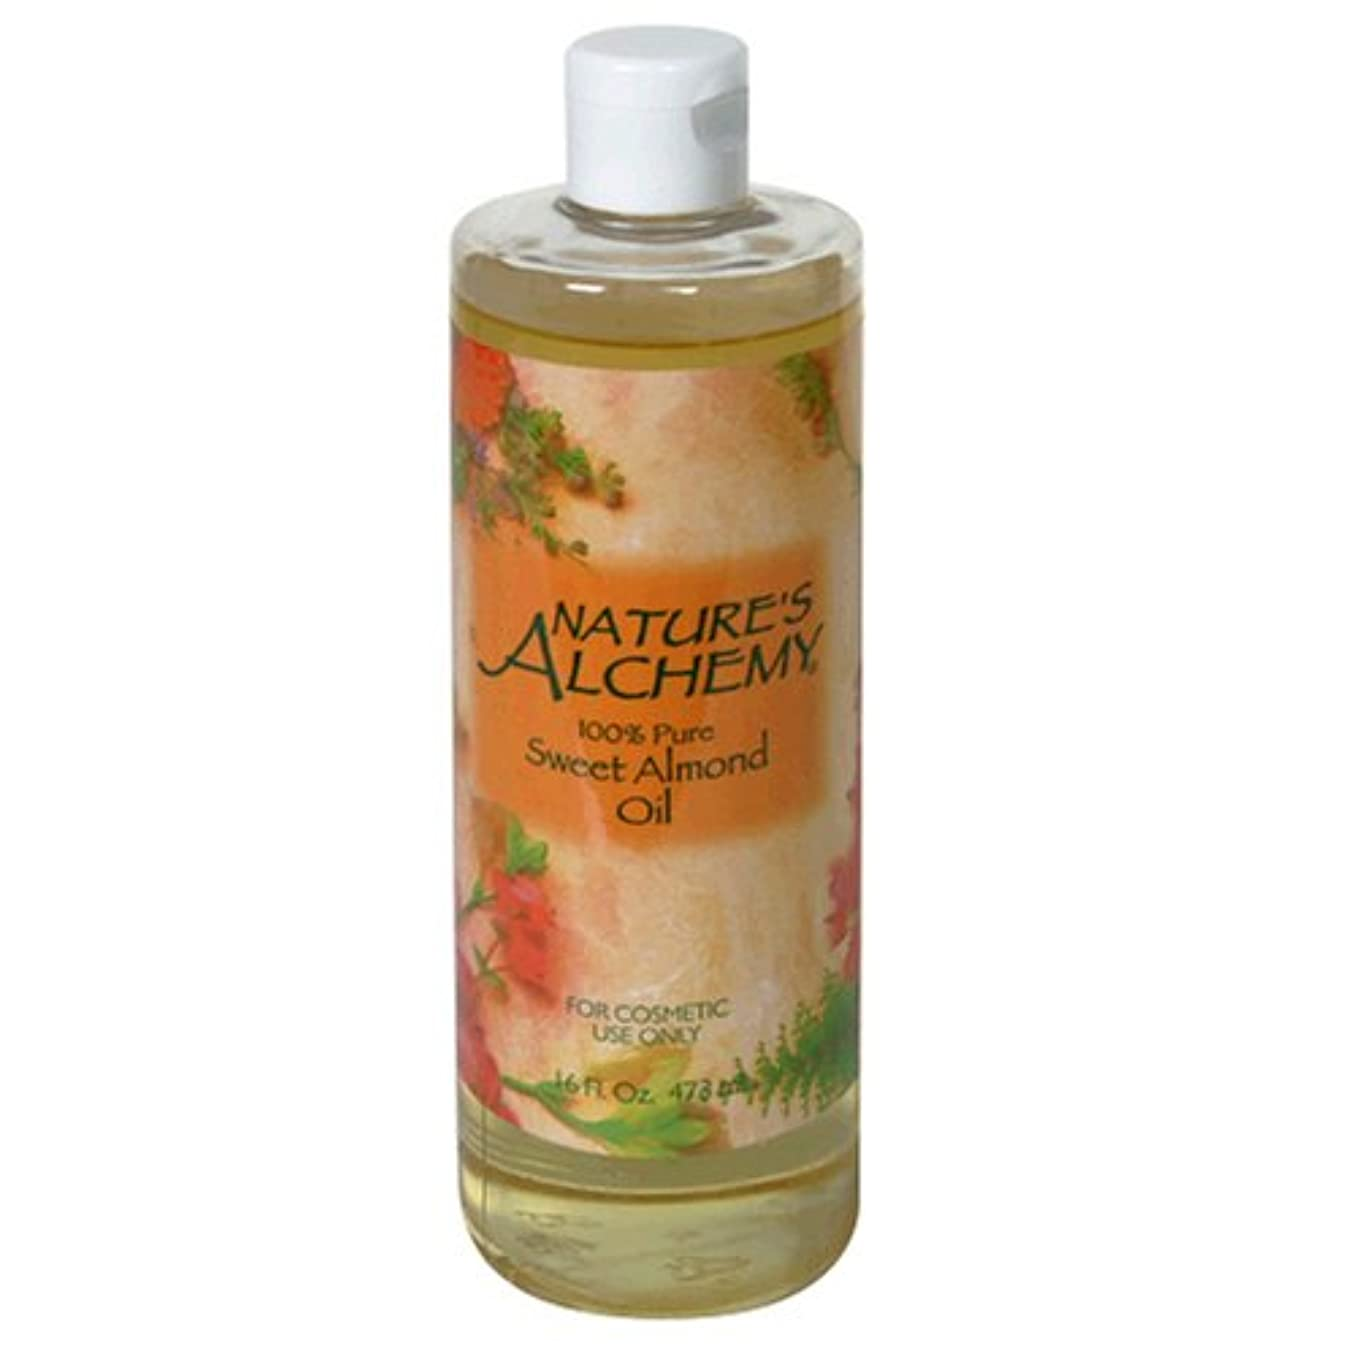 Nature's Alchemy Carrier Oil Sweet Almond 16oz